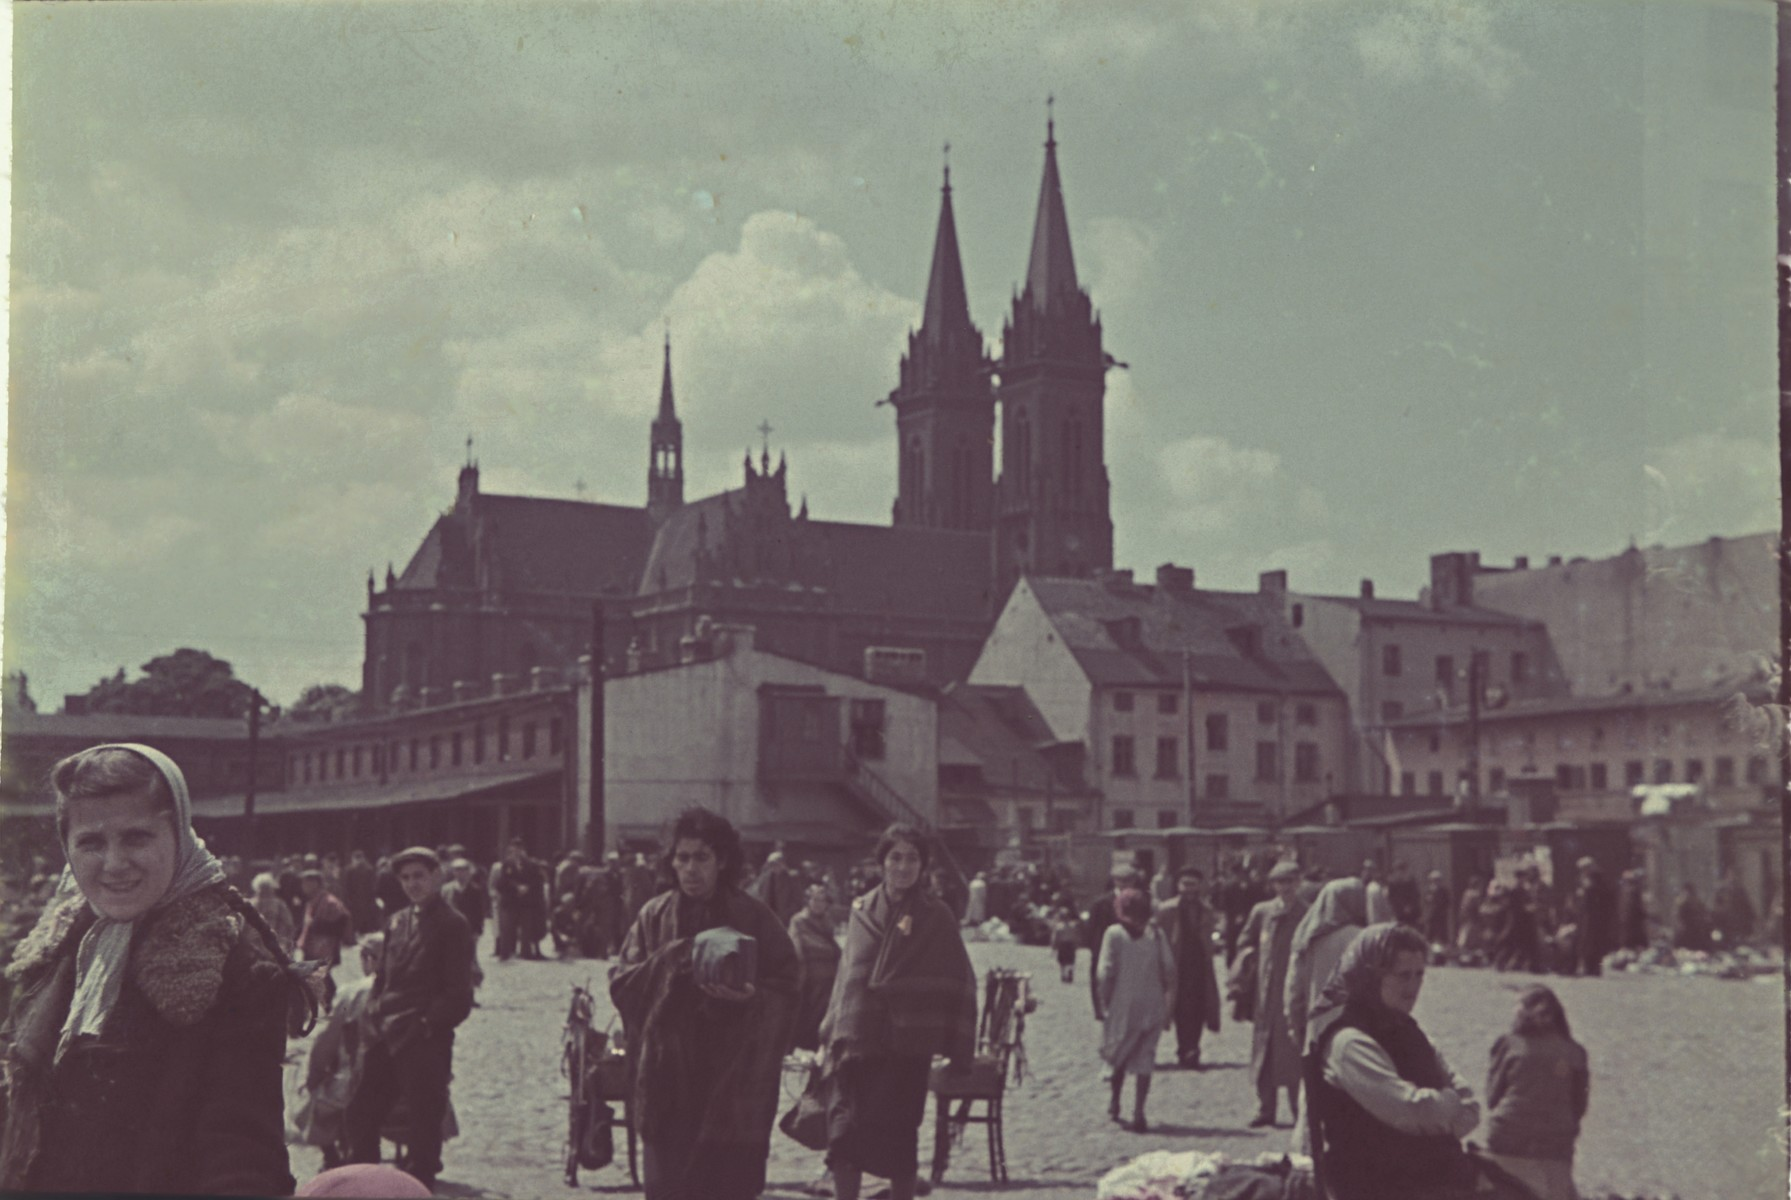 View of the crowded market square of the Lodz ghetto.